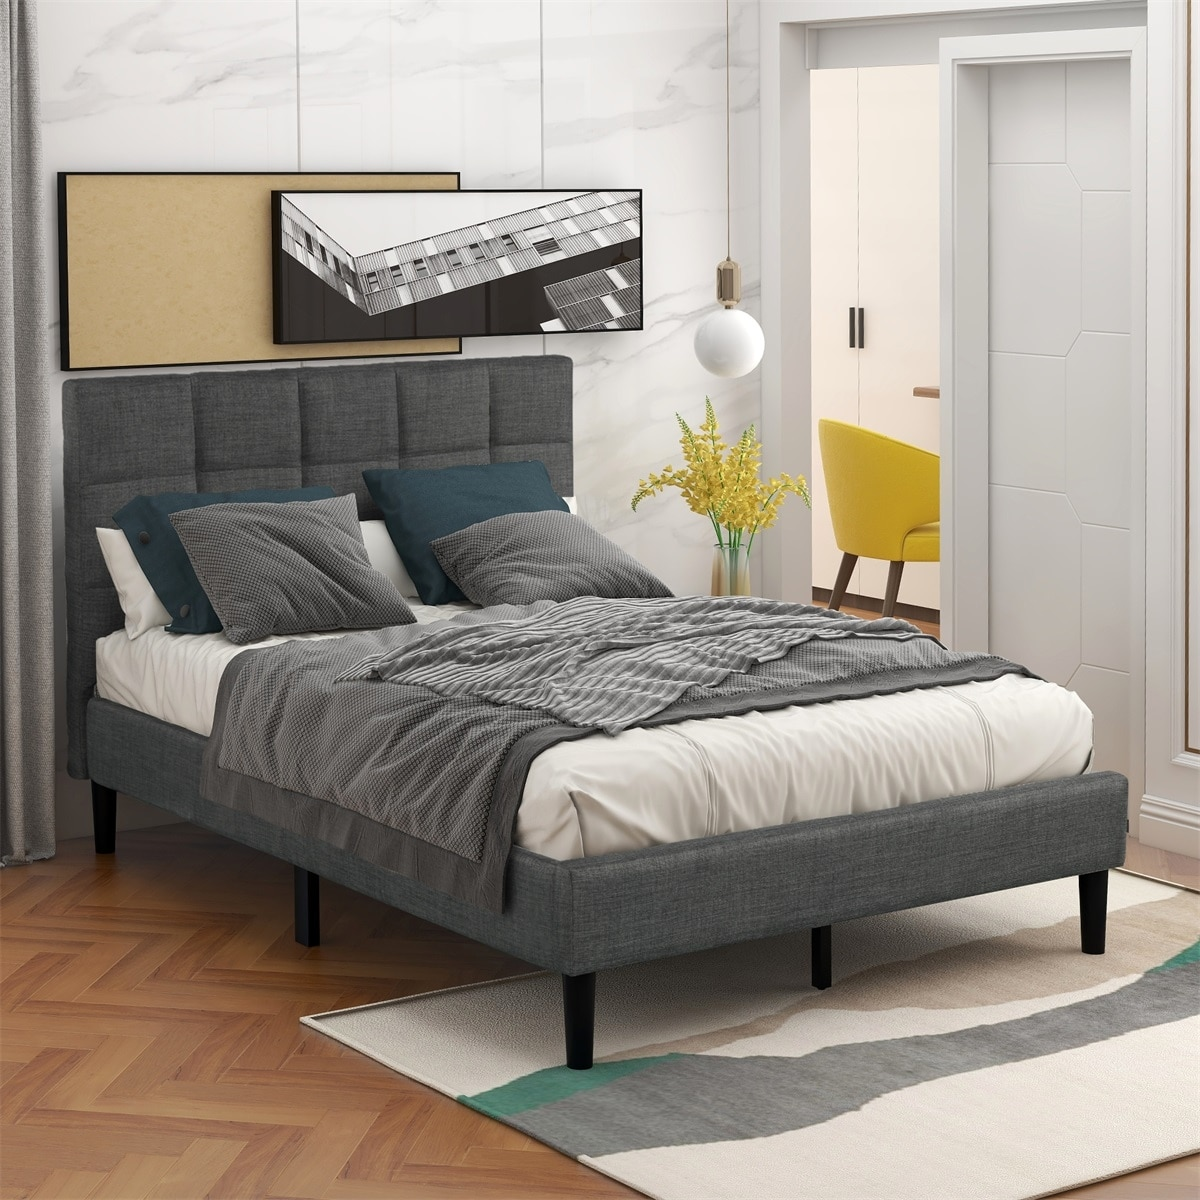 Shop Black Friday Deals On Merax Twin Size Diamond Stitched Upholstered Platform Bed With Headboard No Box Spring Needed Overstock 31825474